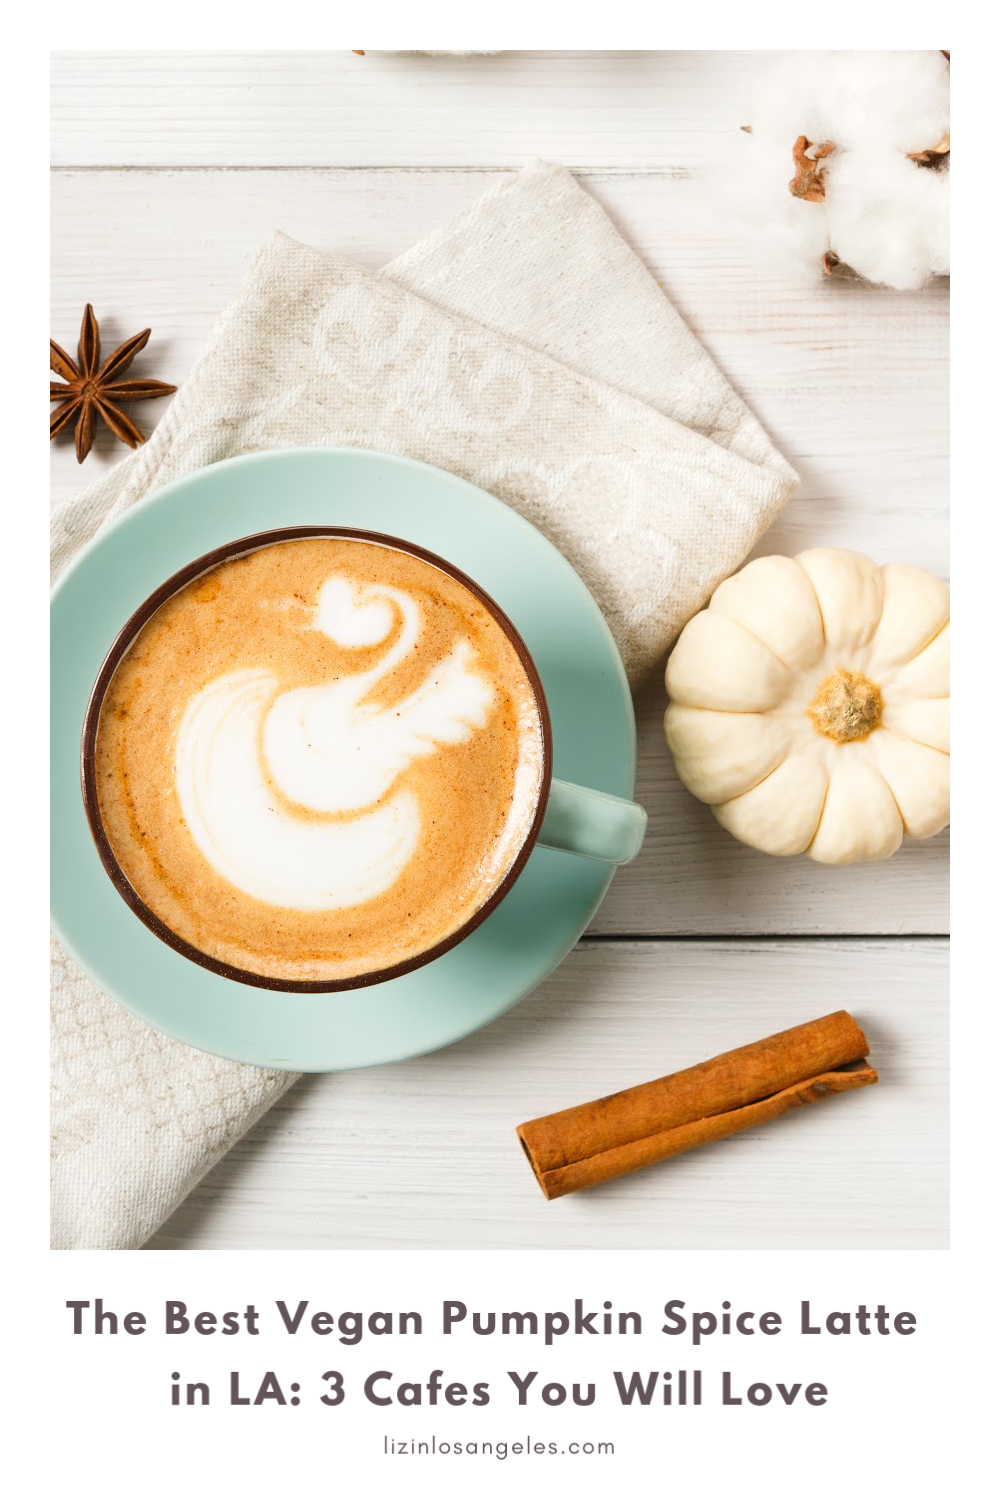 The Best Vegan Pumpkin Spice Latte in LA: 3 Cafes You Will Love, a blog post by Liz in Los Angeles, top Los Angeles lifestyle blogger, an image of pumpkin spice latte and a white pumpkin